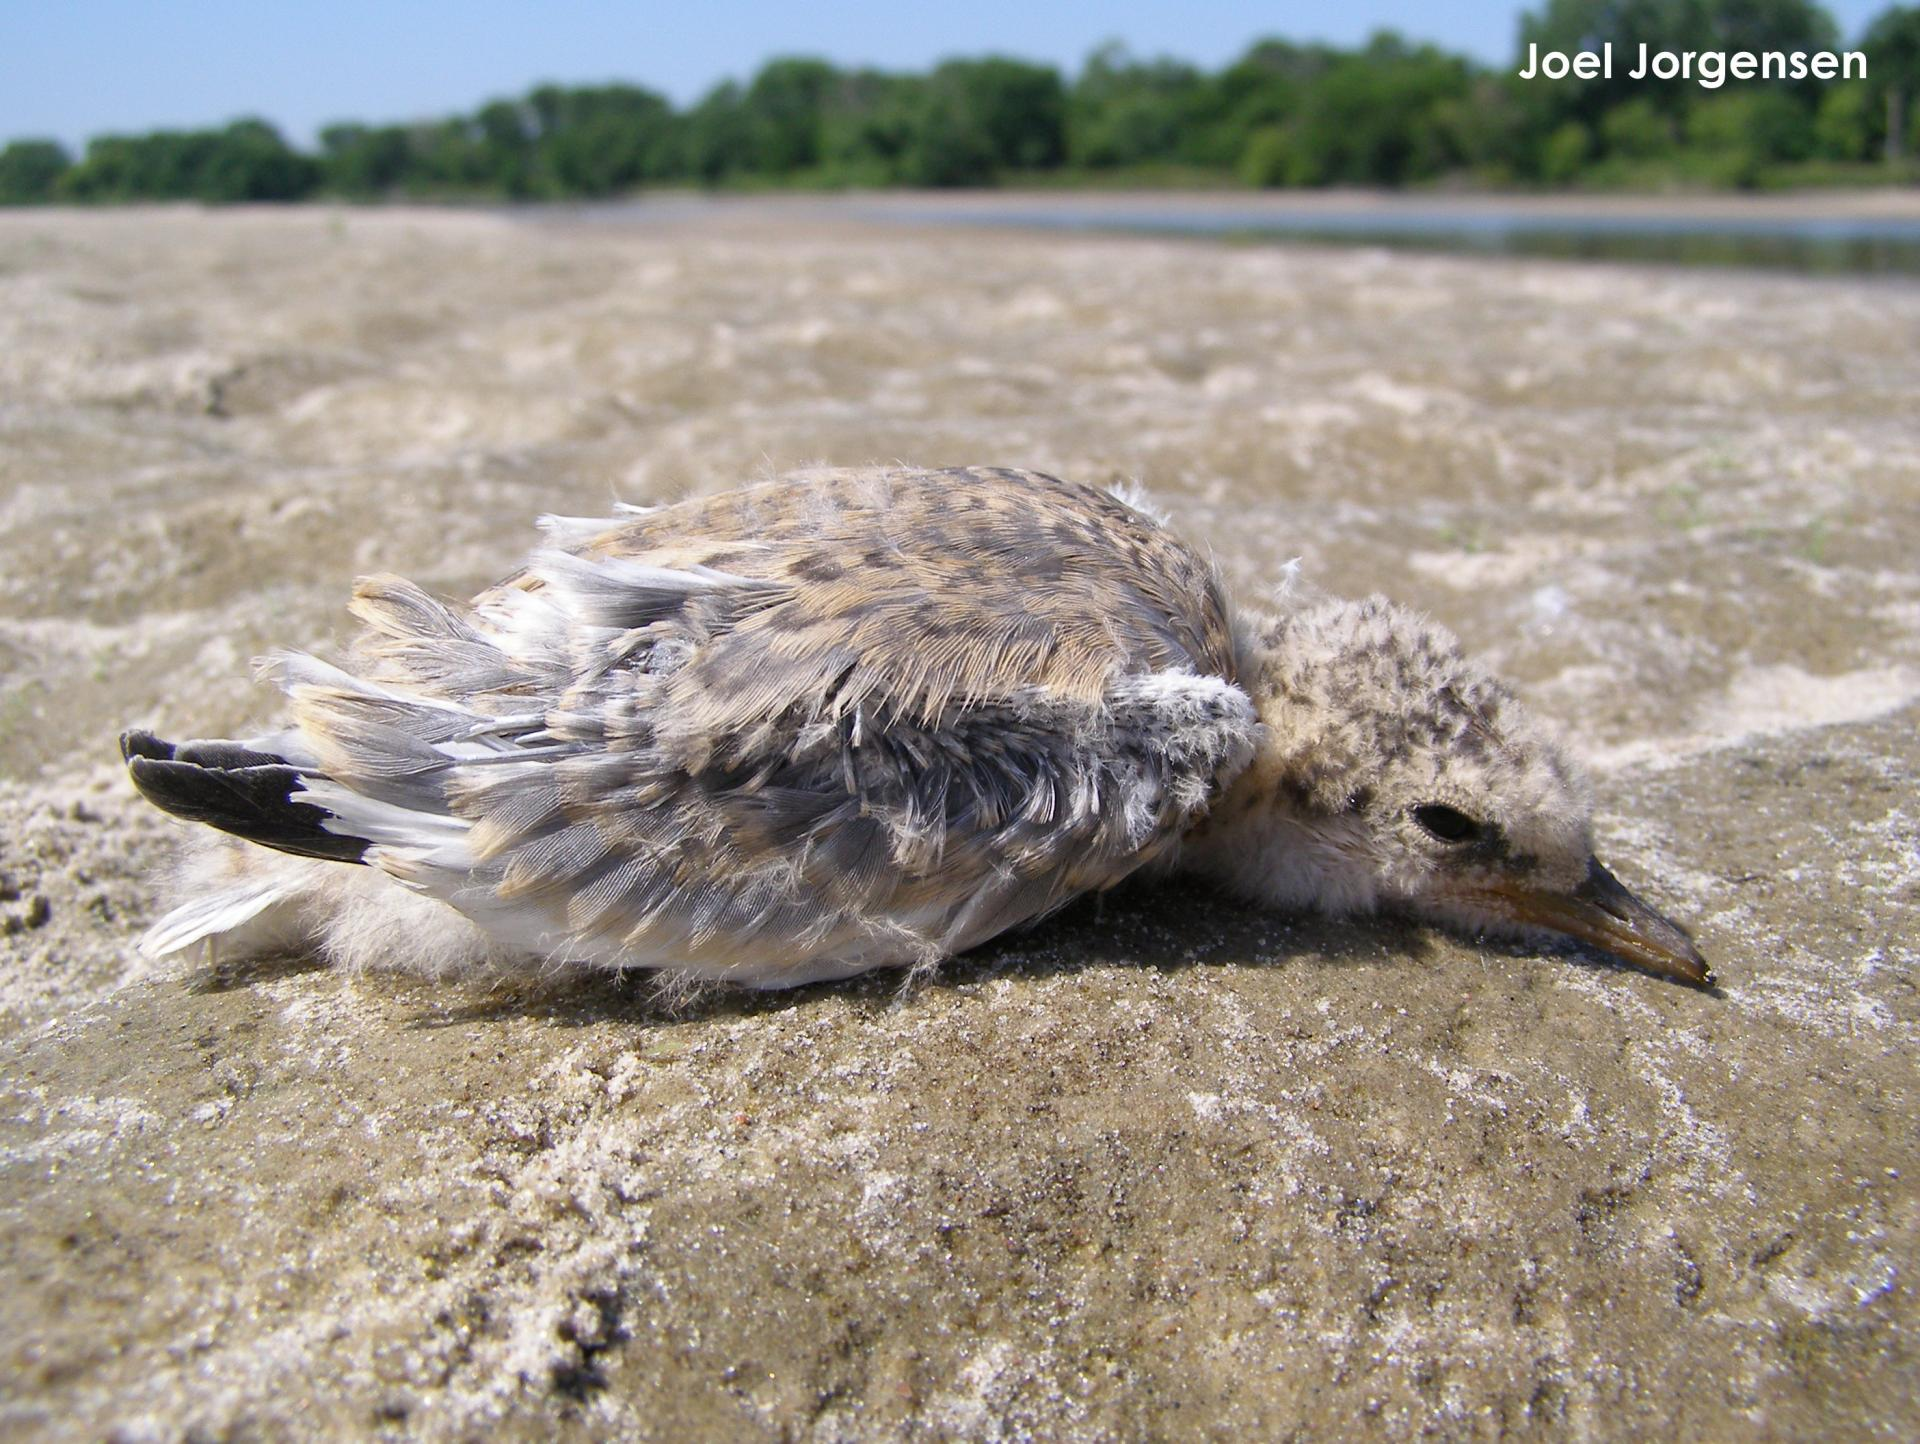 12-day-old tern chick on a river sandbar